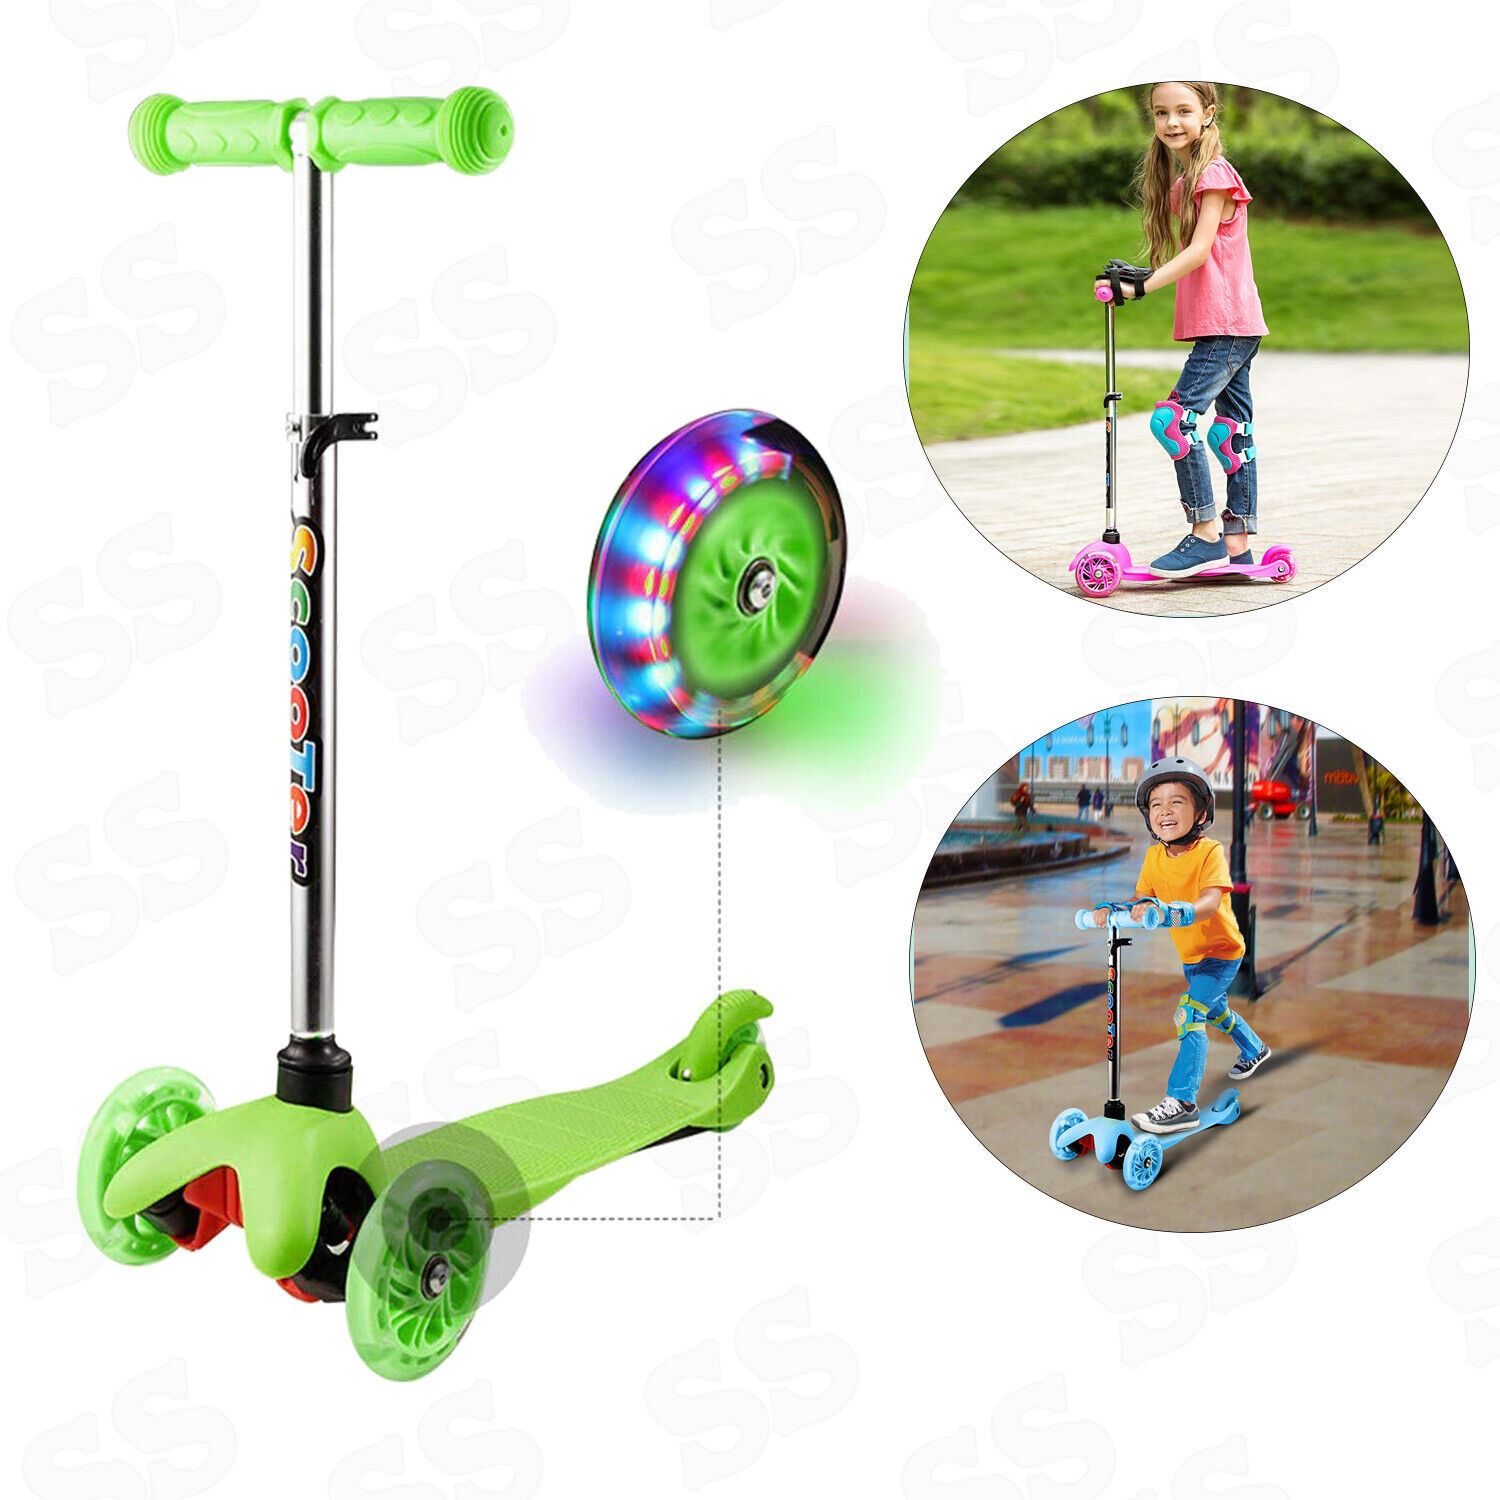 Kids Adjustable Height Kick Scooter with LED Light Up Wheels